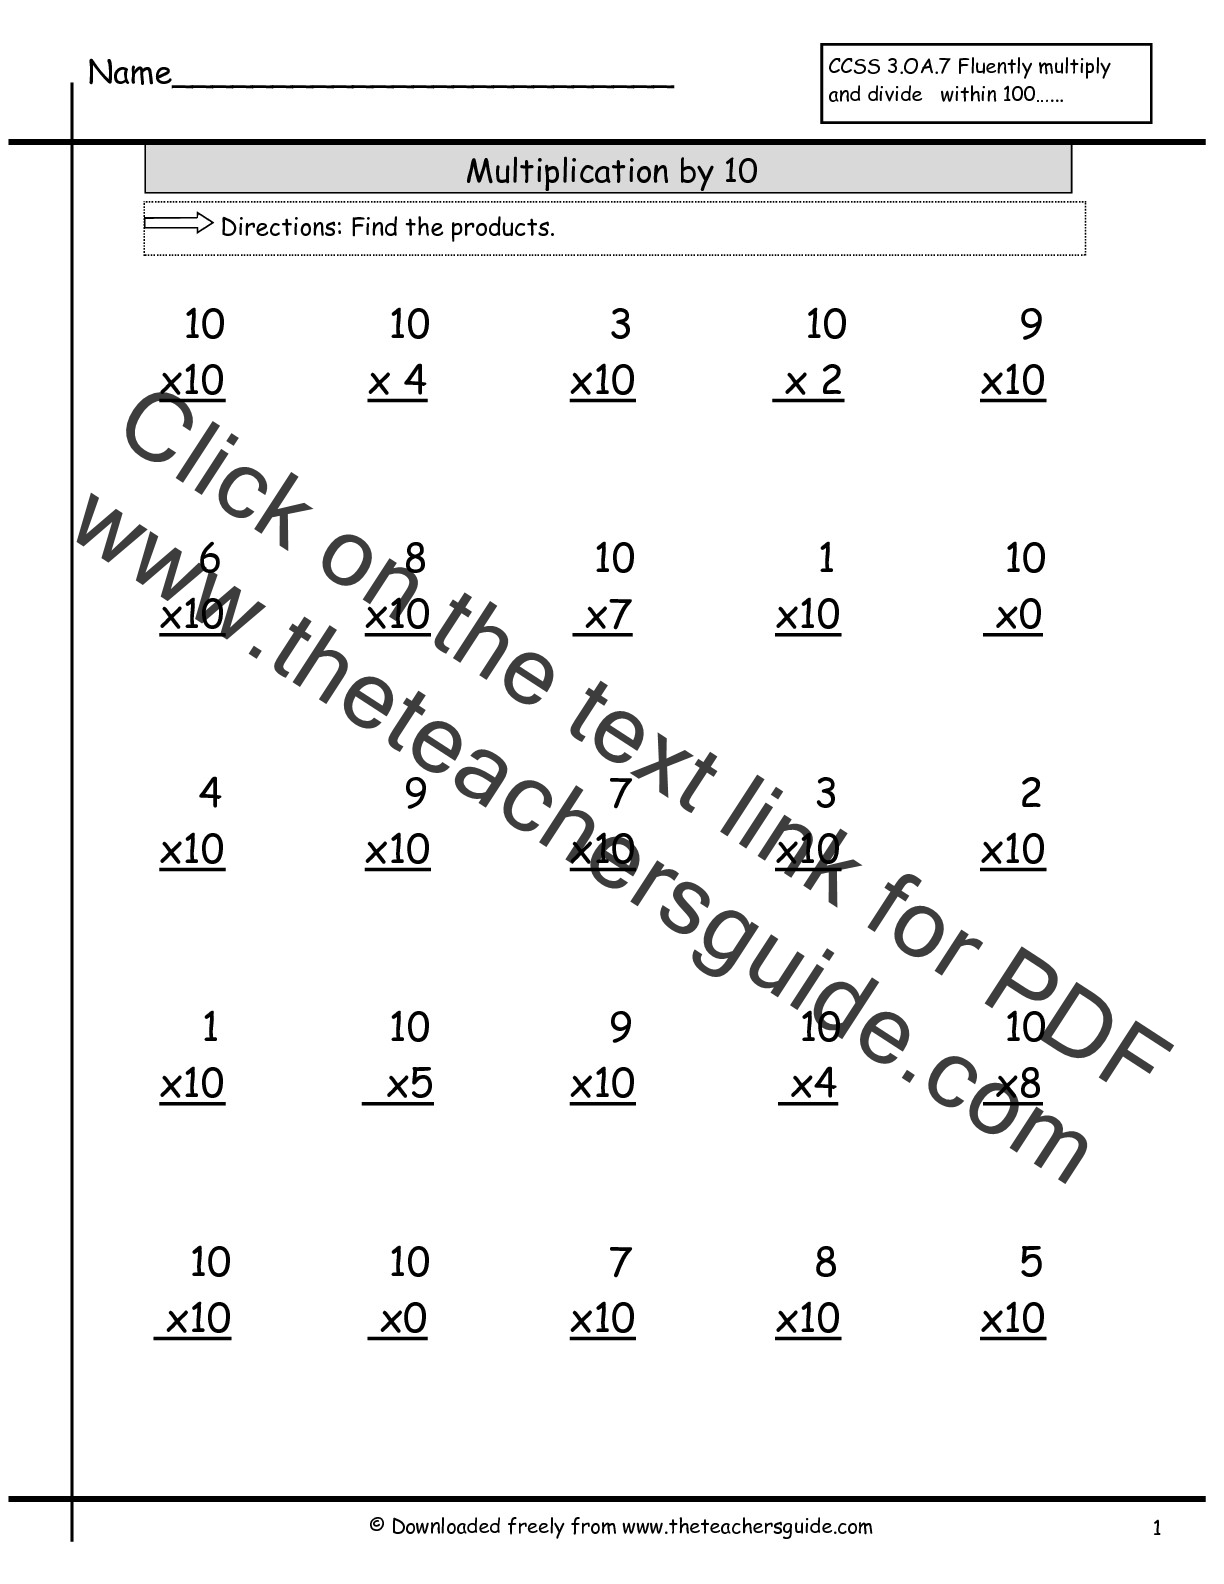 multiplication facts worksheets from the teacher 39 s guide. Black Bedroom Furniture Sets. Home Design Ideas